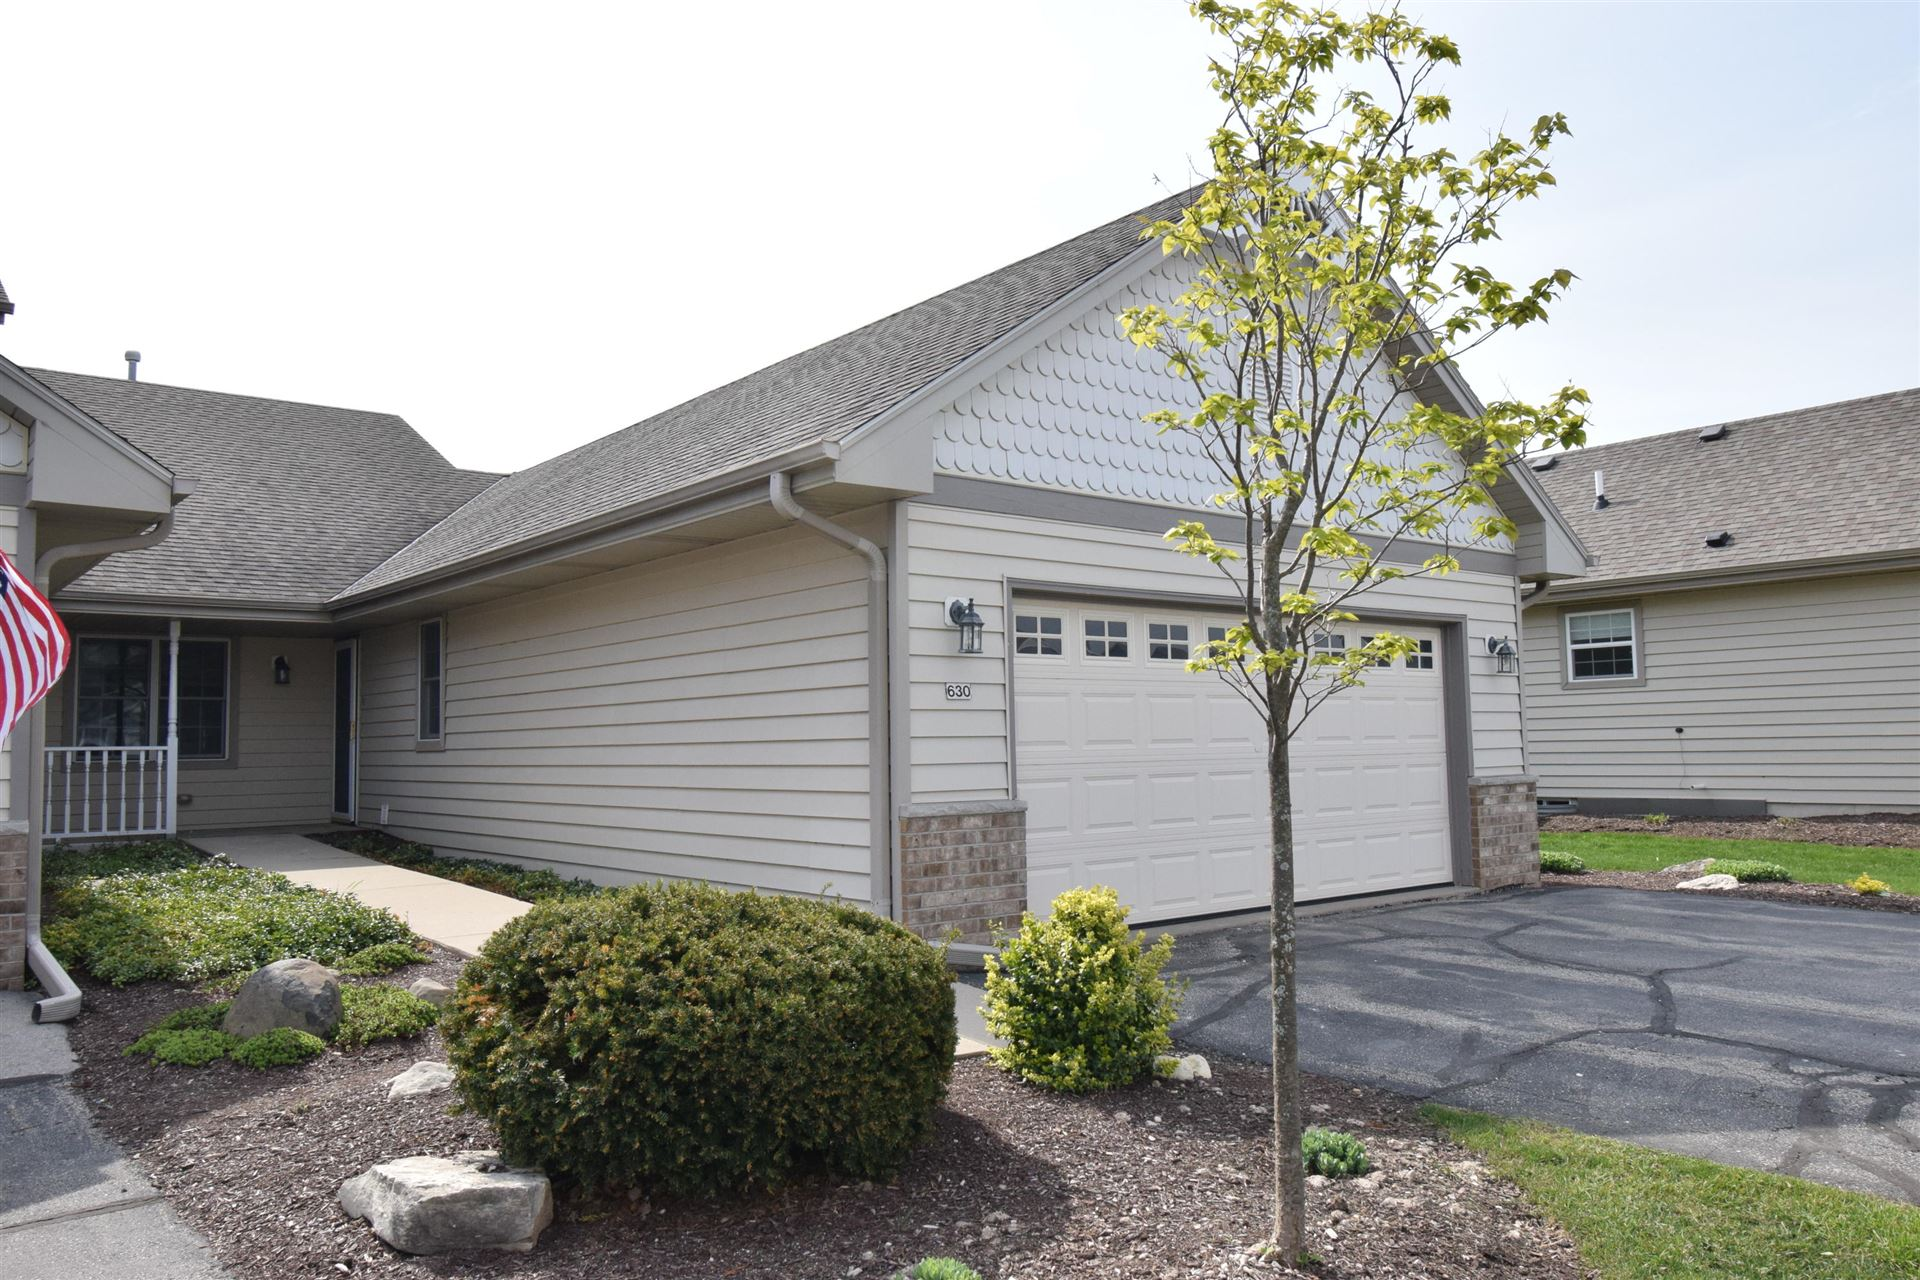 630 Annecy Park Cir, Waterford, WI 53185 - #: 1737189